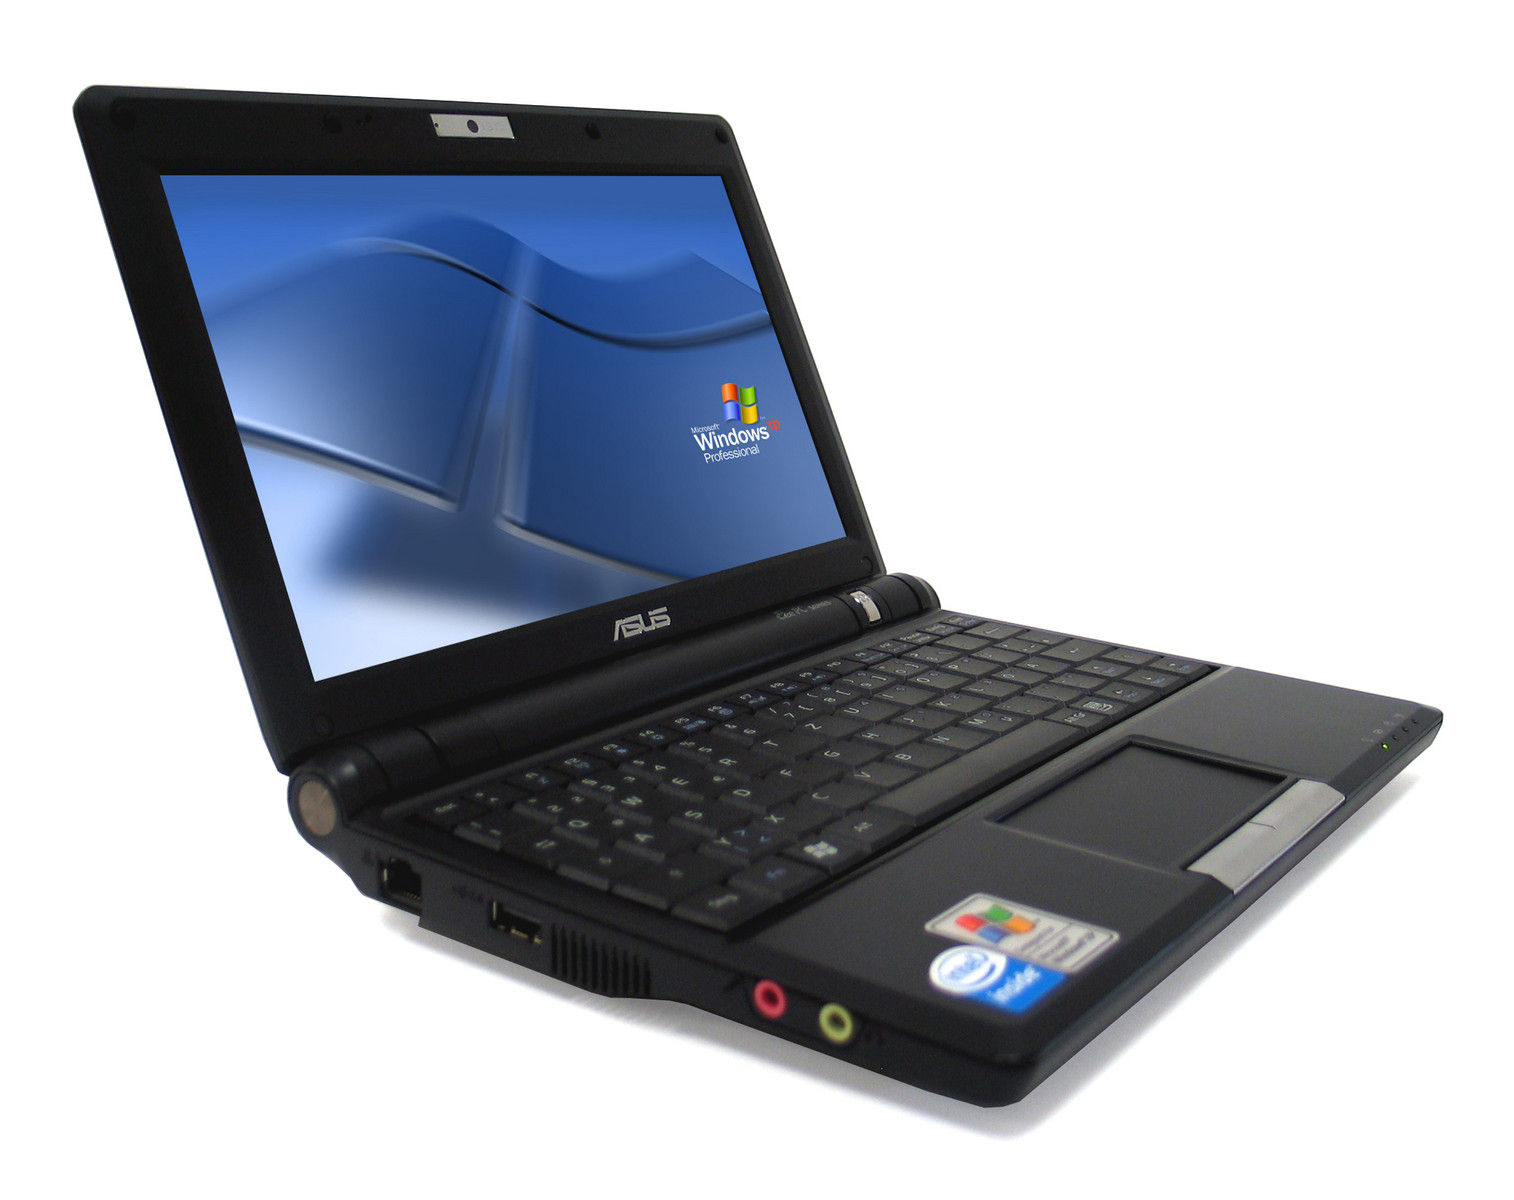 ASUS 900 WINDOWS 8.1 DRIVERS DOWNLOAD